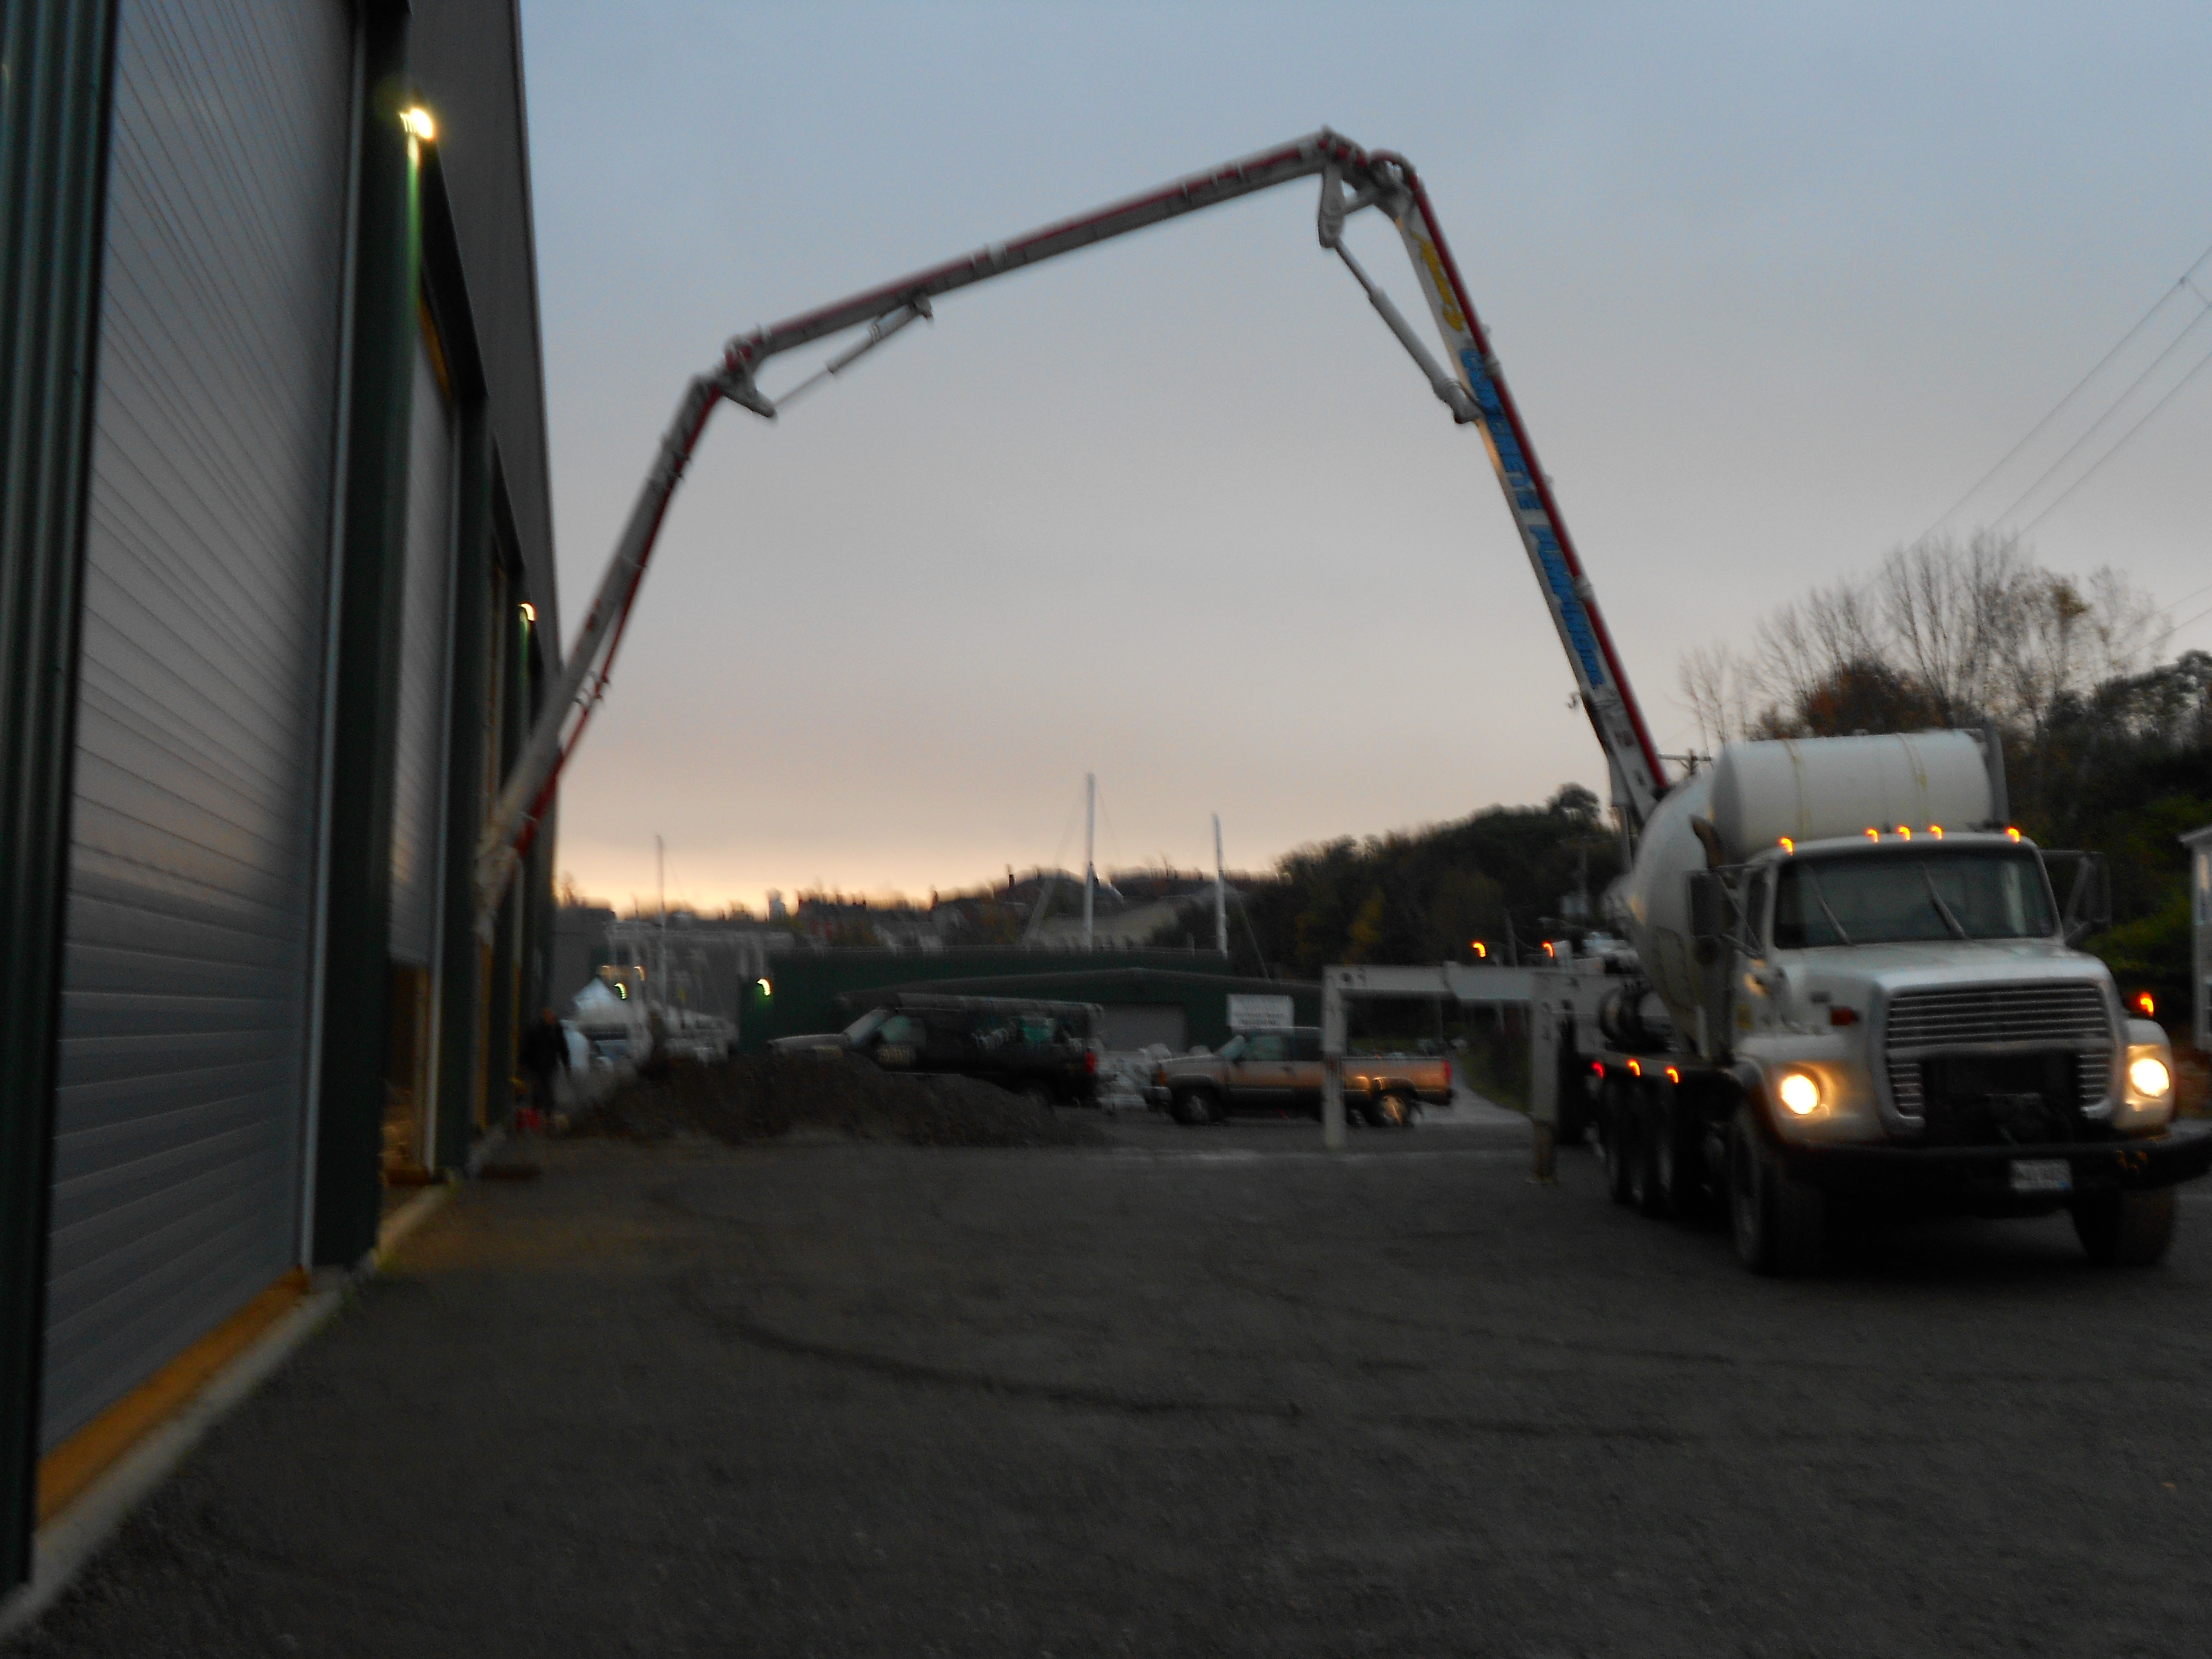 Pumping concrete to cover the radiant heated floor